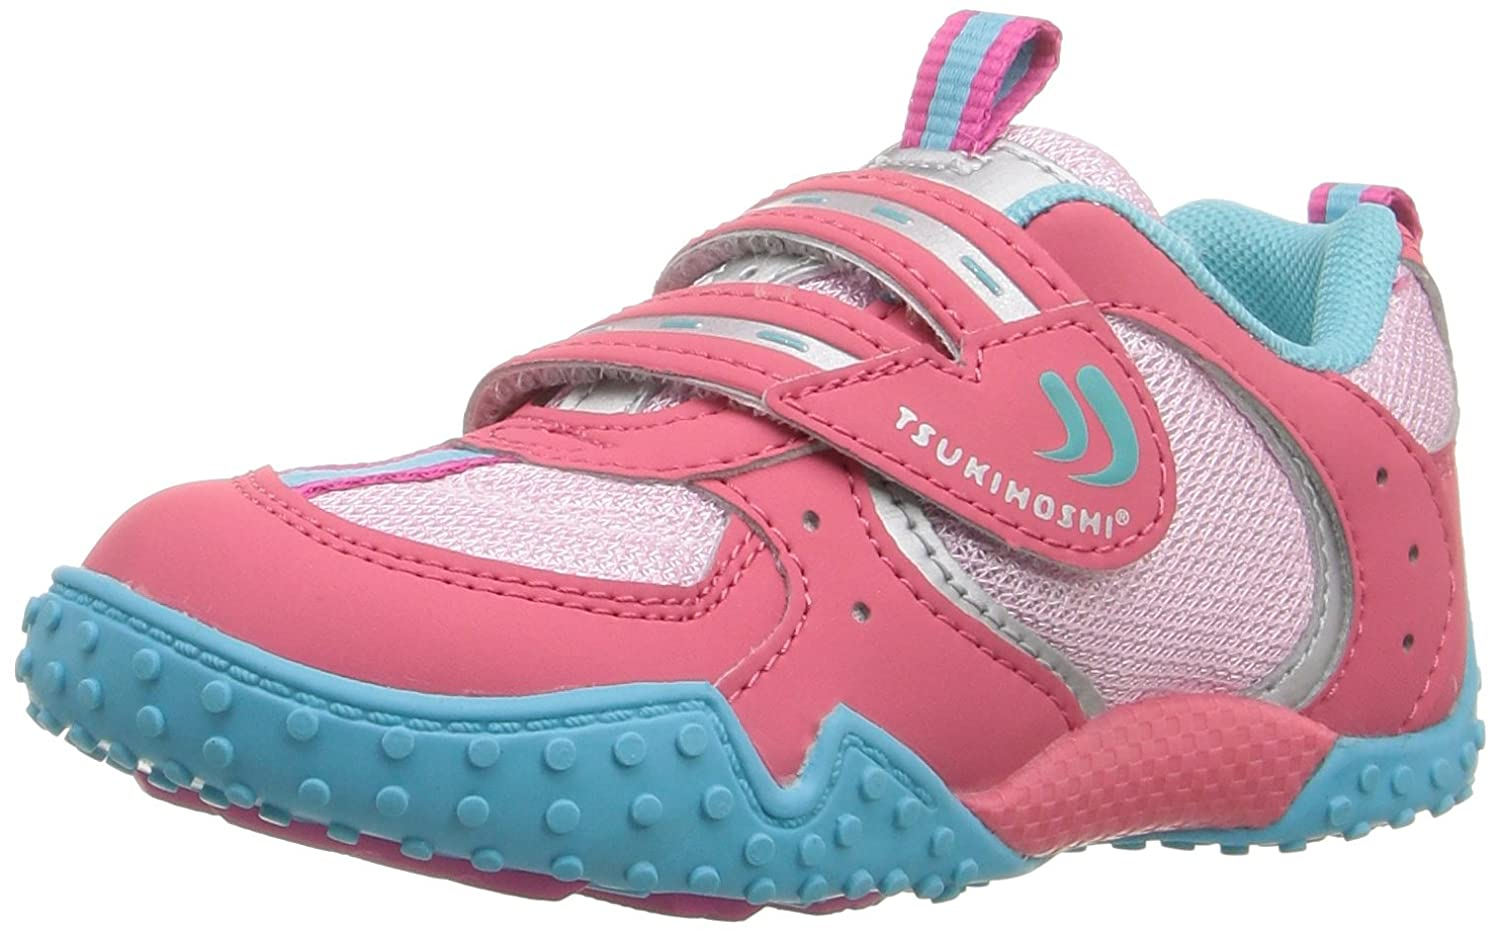 Tsukihoshi Wheel Casual Sneaker (Toddler/Little Kid/Big Kid) Wheel - K